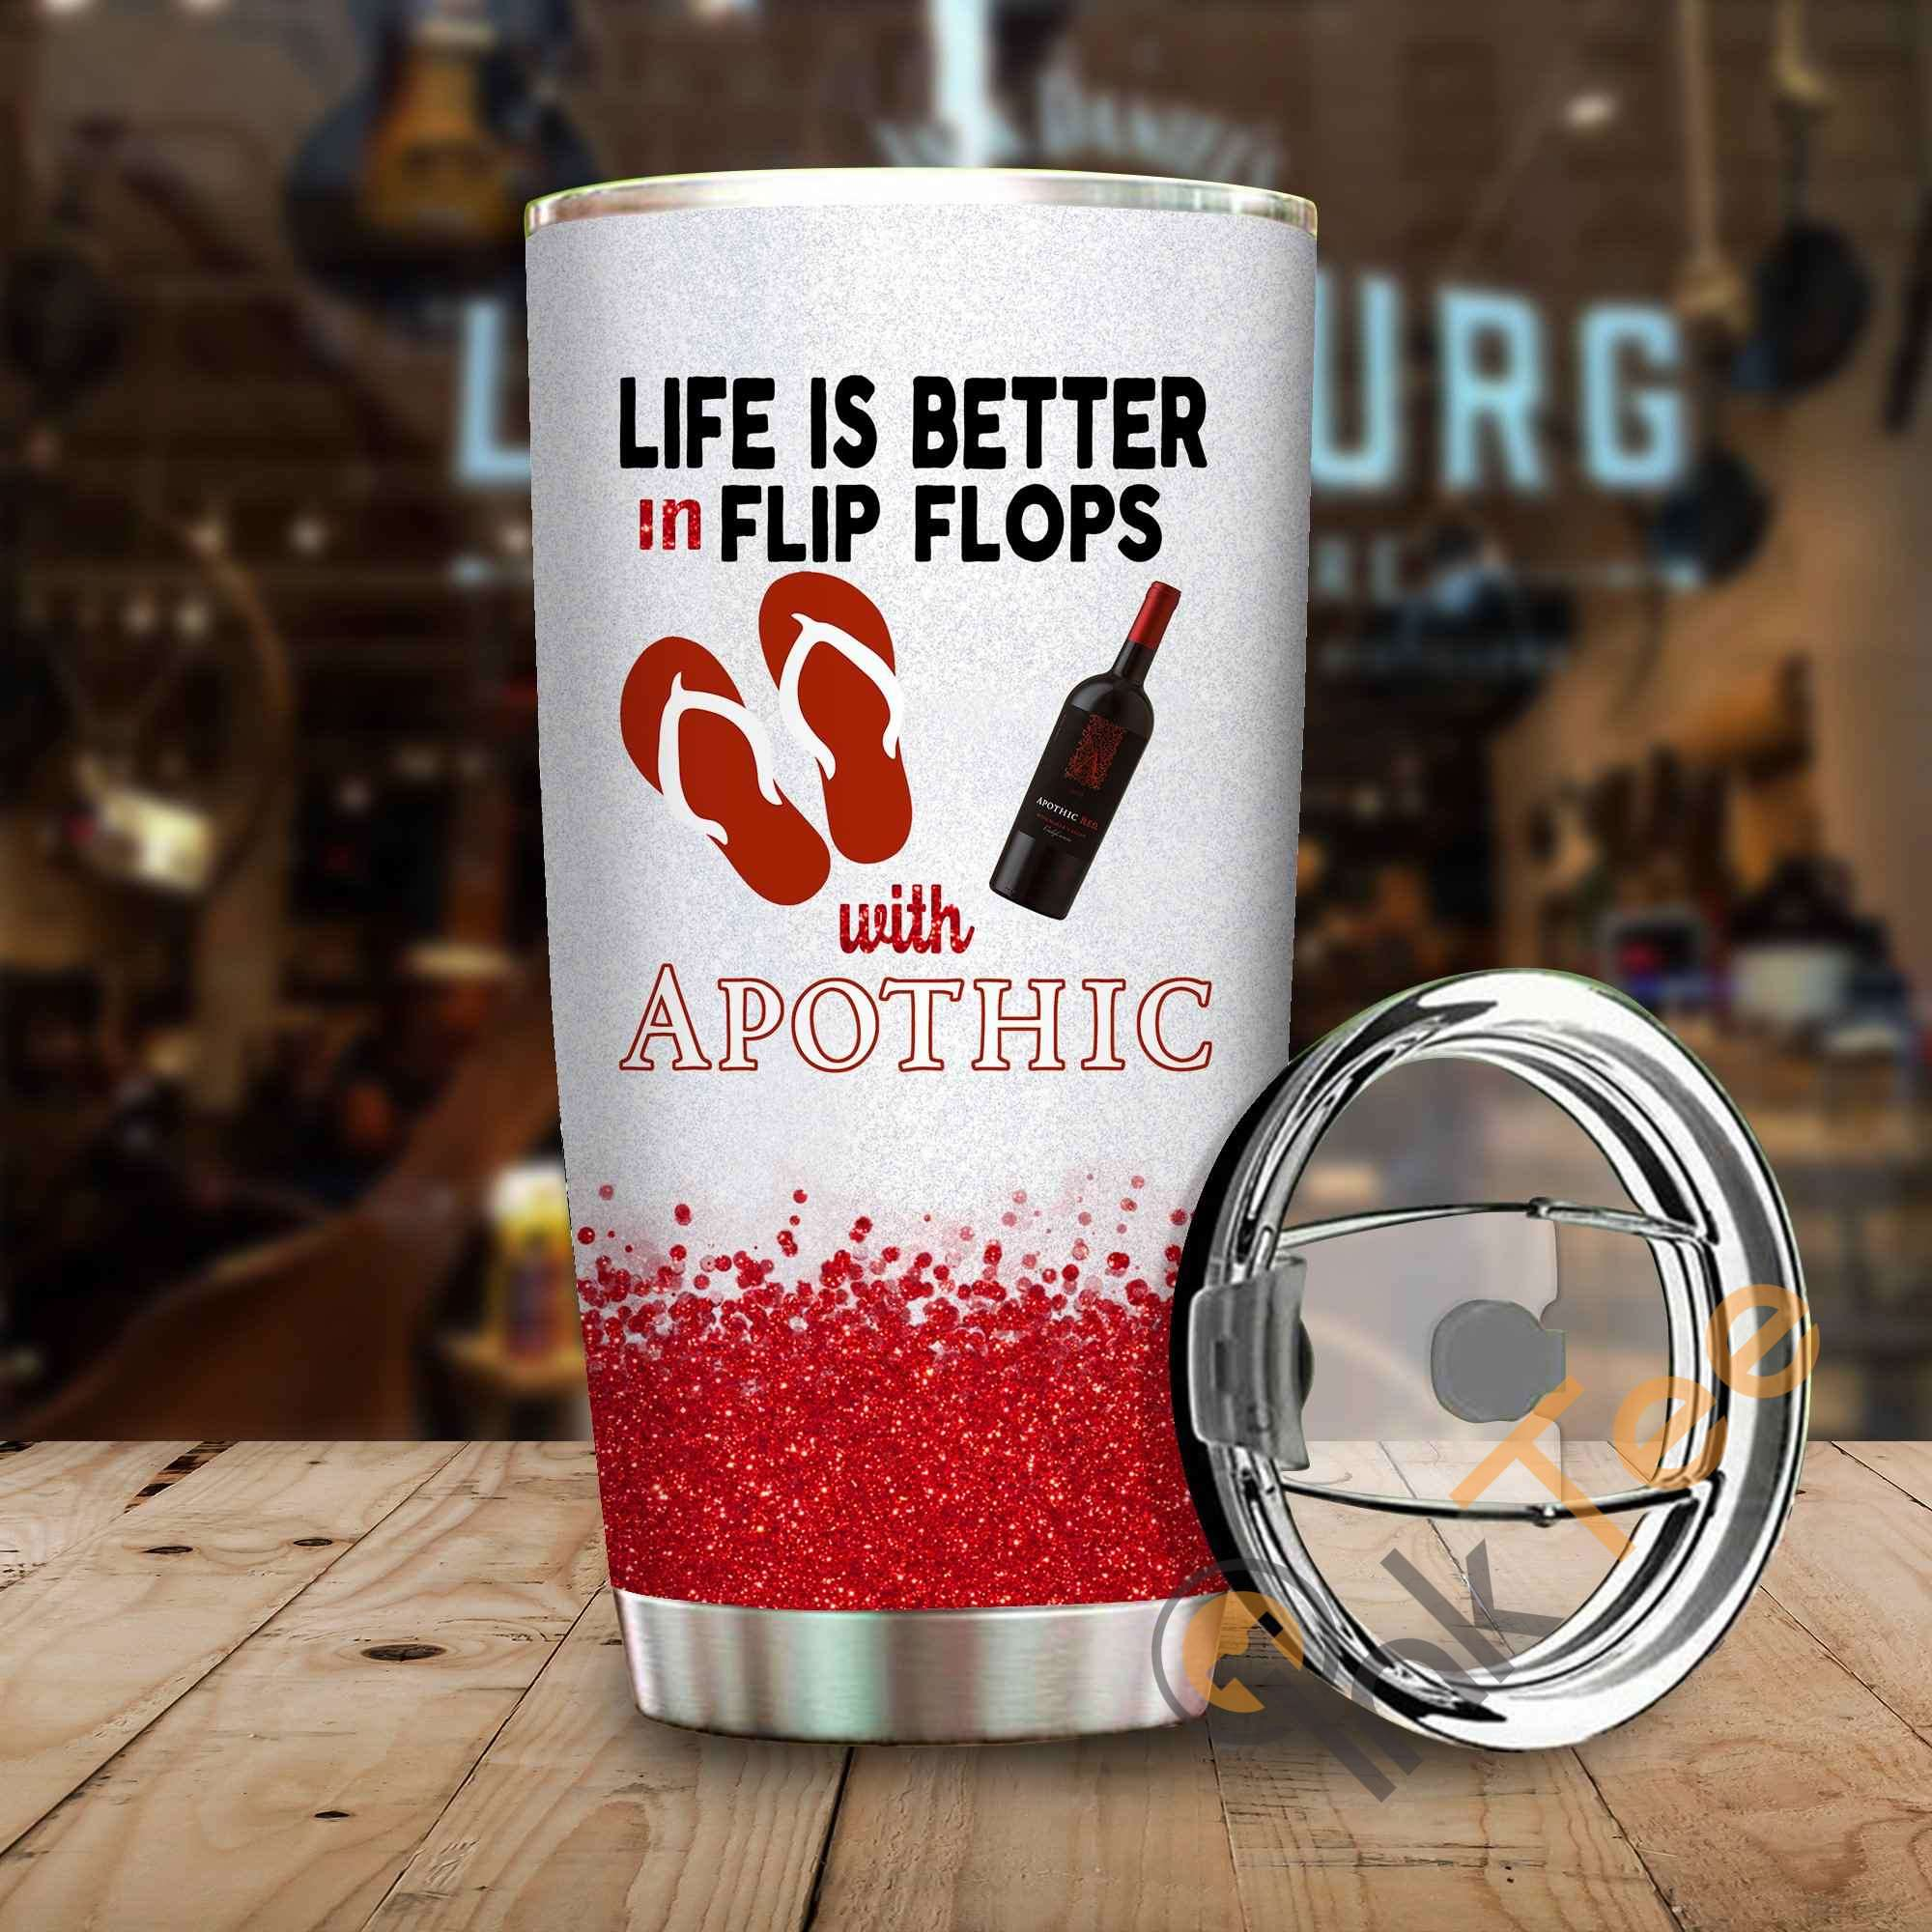 Life Is Better In Flip Flops With Apothic Amazon Best Seller Sku 3964 Stainless Steel Tumbler